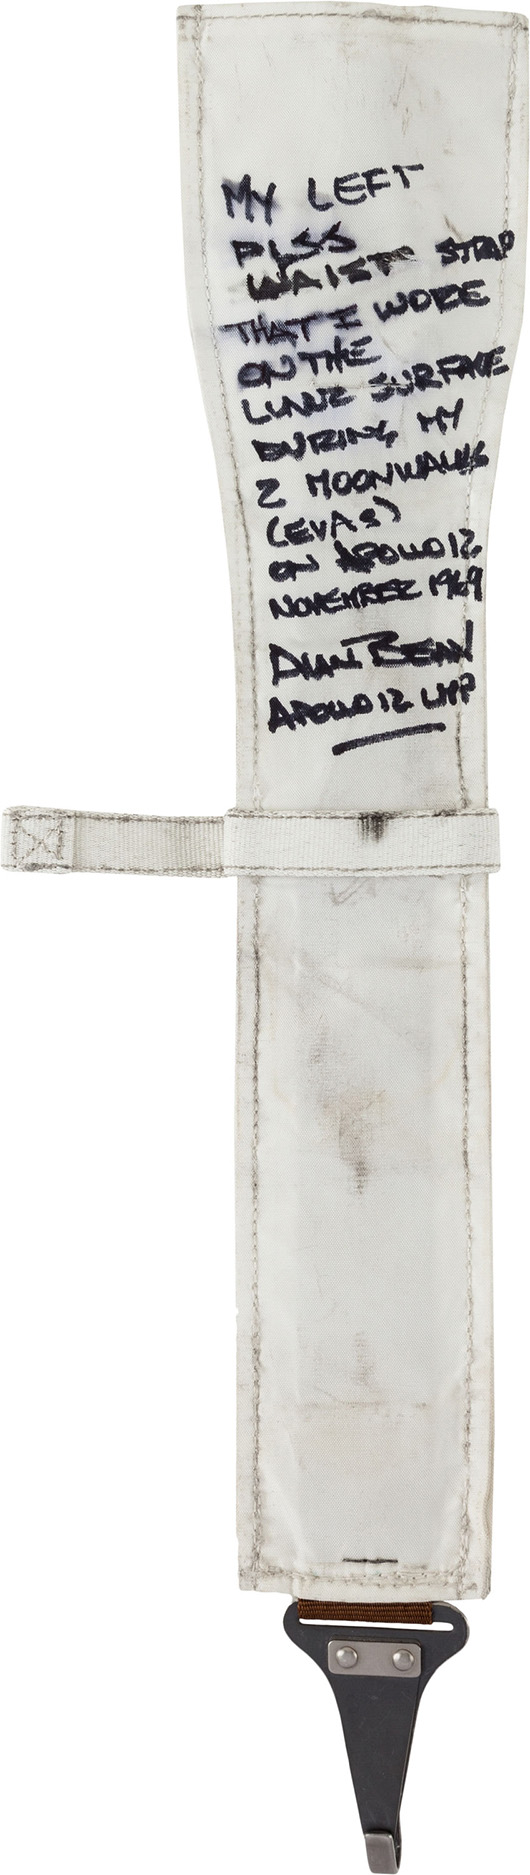 Apollo 12 lunar module flown and surface-used PLSS strap directly from the personal collection of mission lunar module pilot Alan Bean, certified and signed. Estimate: $60,000-$75,000. Heritage Auctions image.